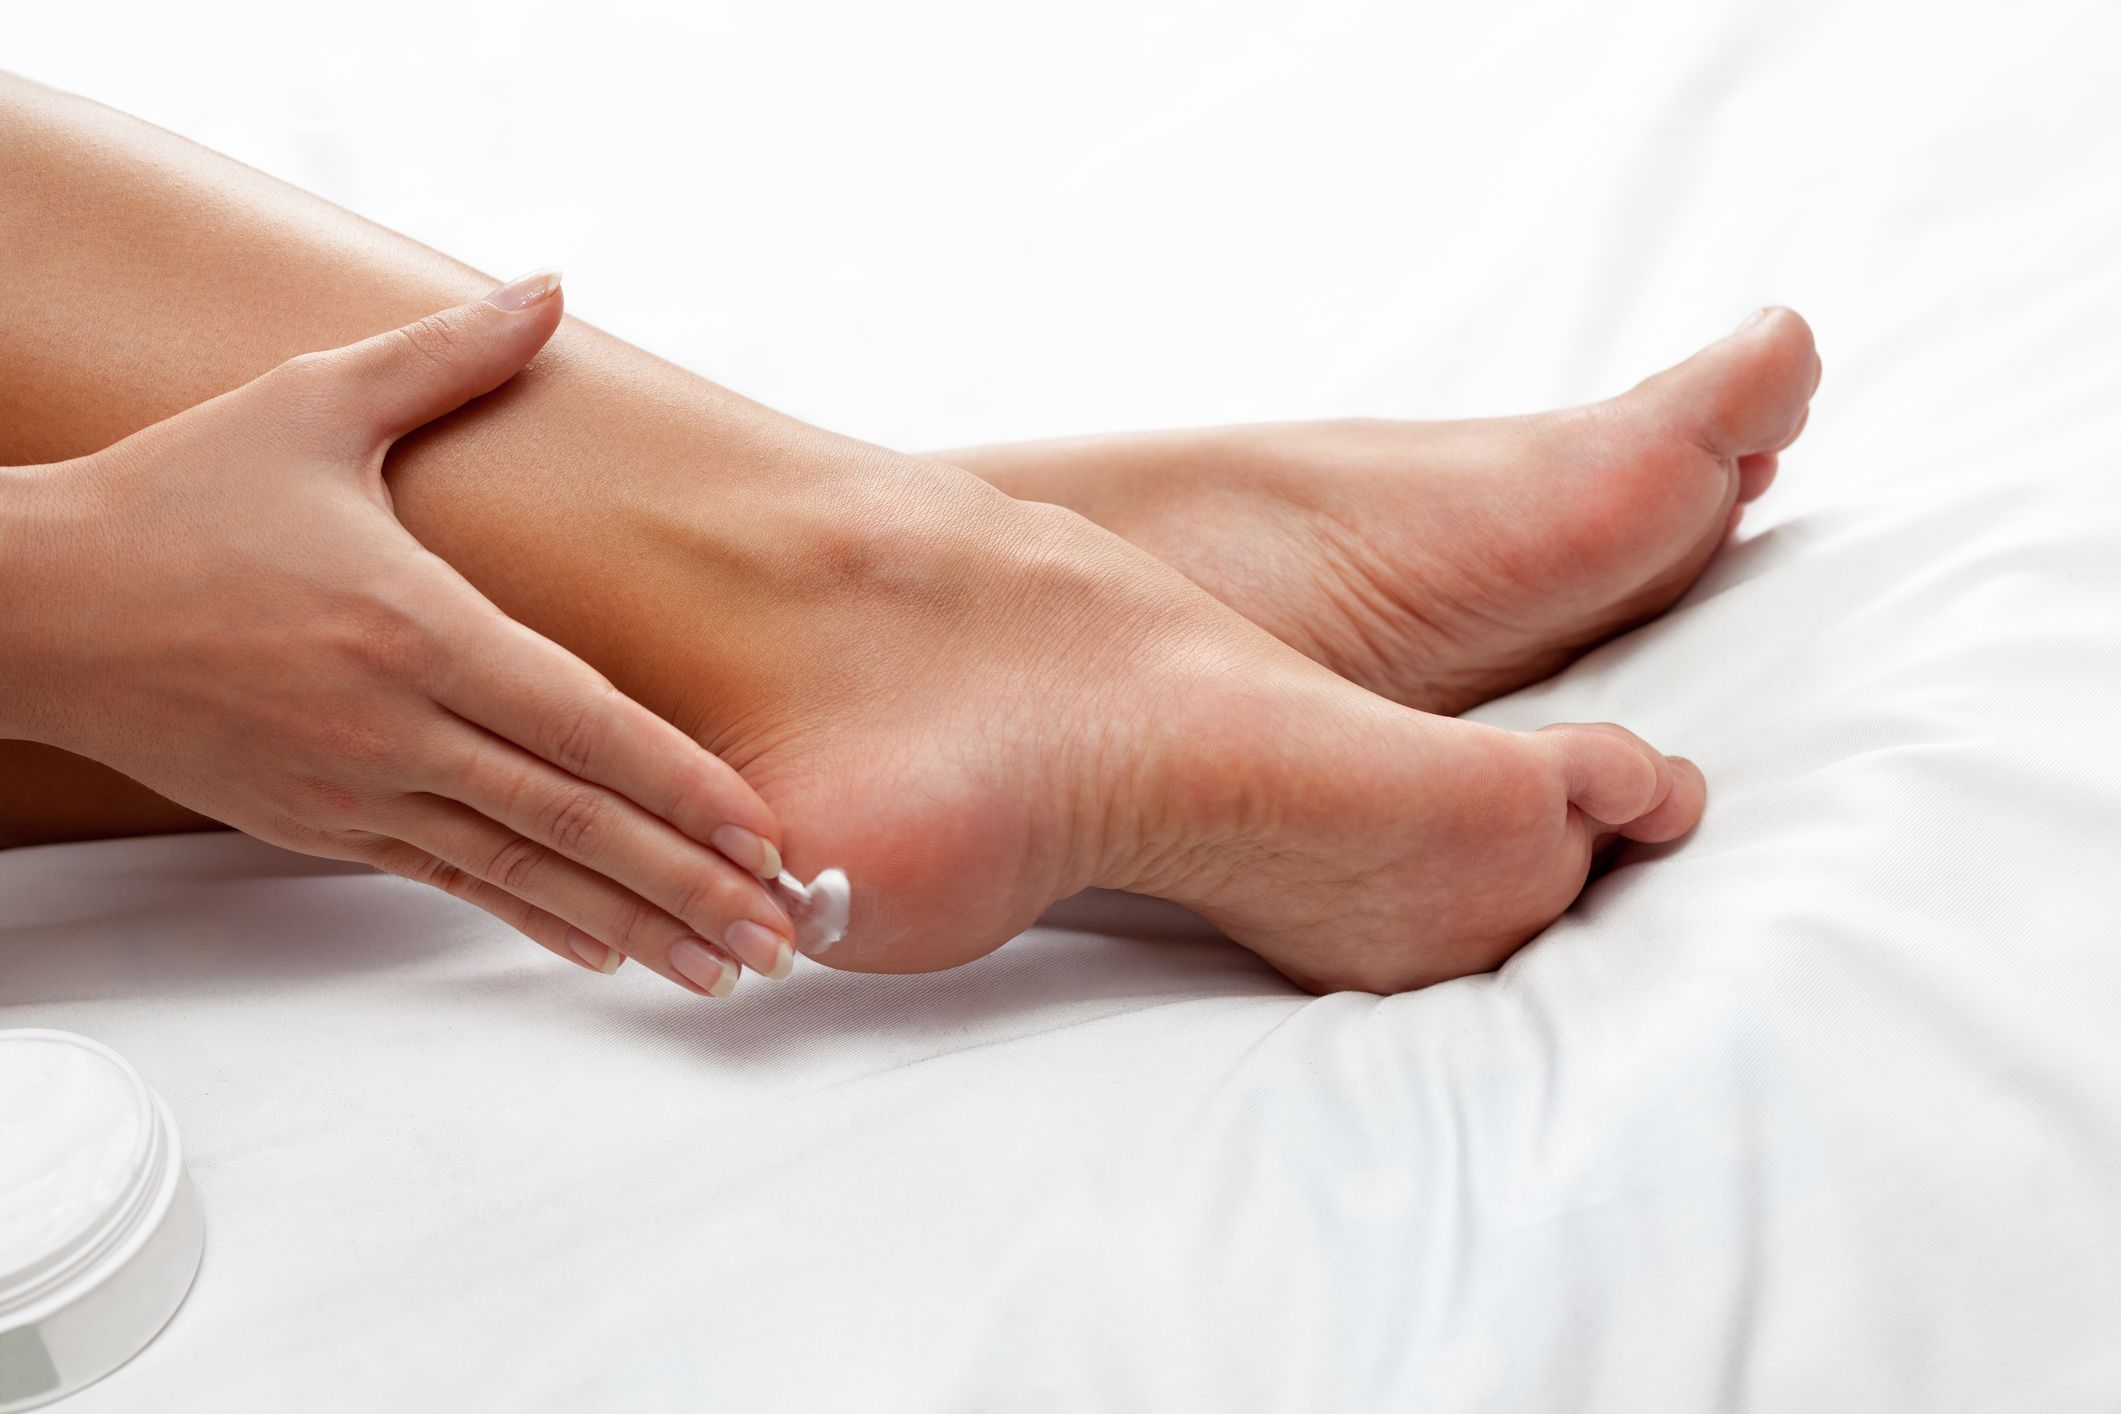 10 Best Foot Creams for Dry Feet and